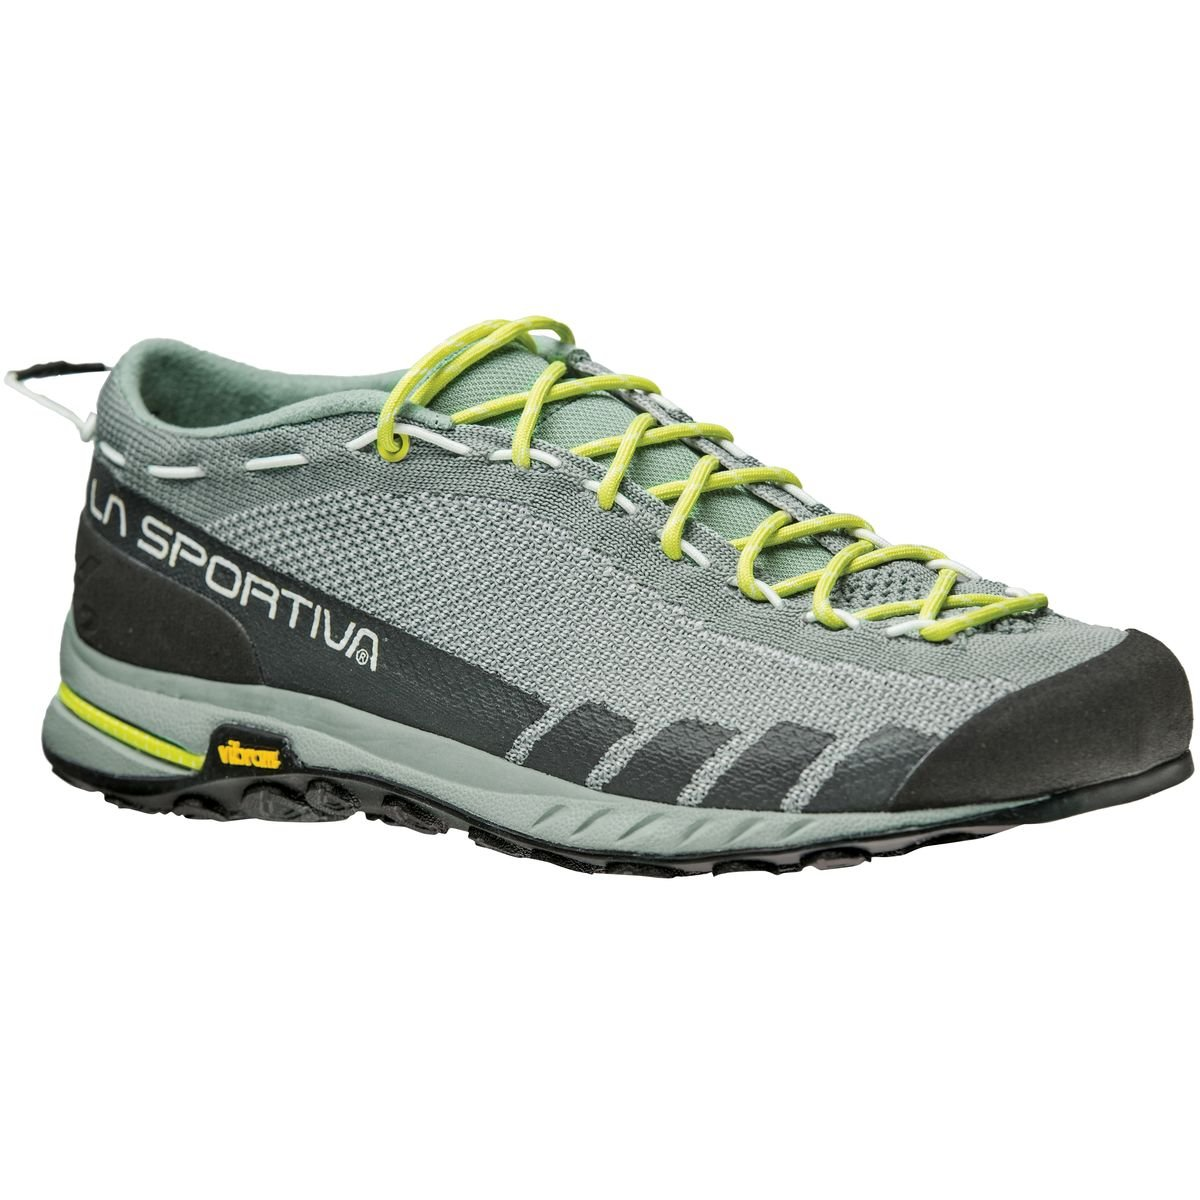 La Sportiva TX2 Hiking Shoe - Women's B01015N4GA 41 M EU|Greenbay